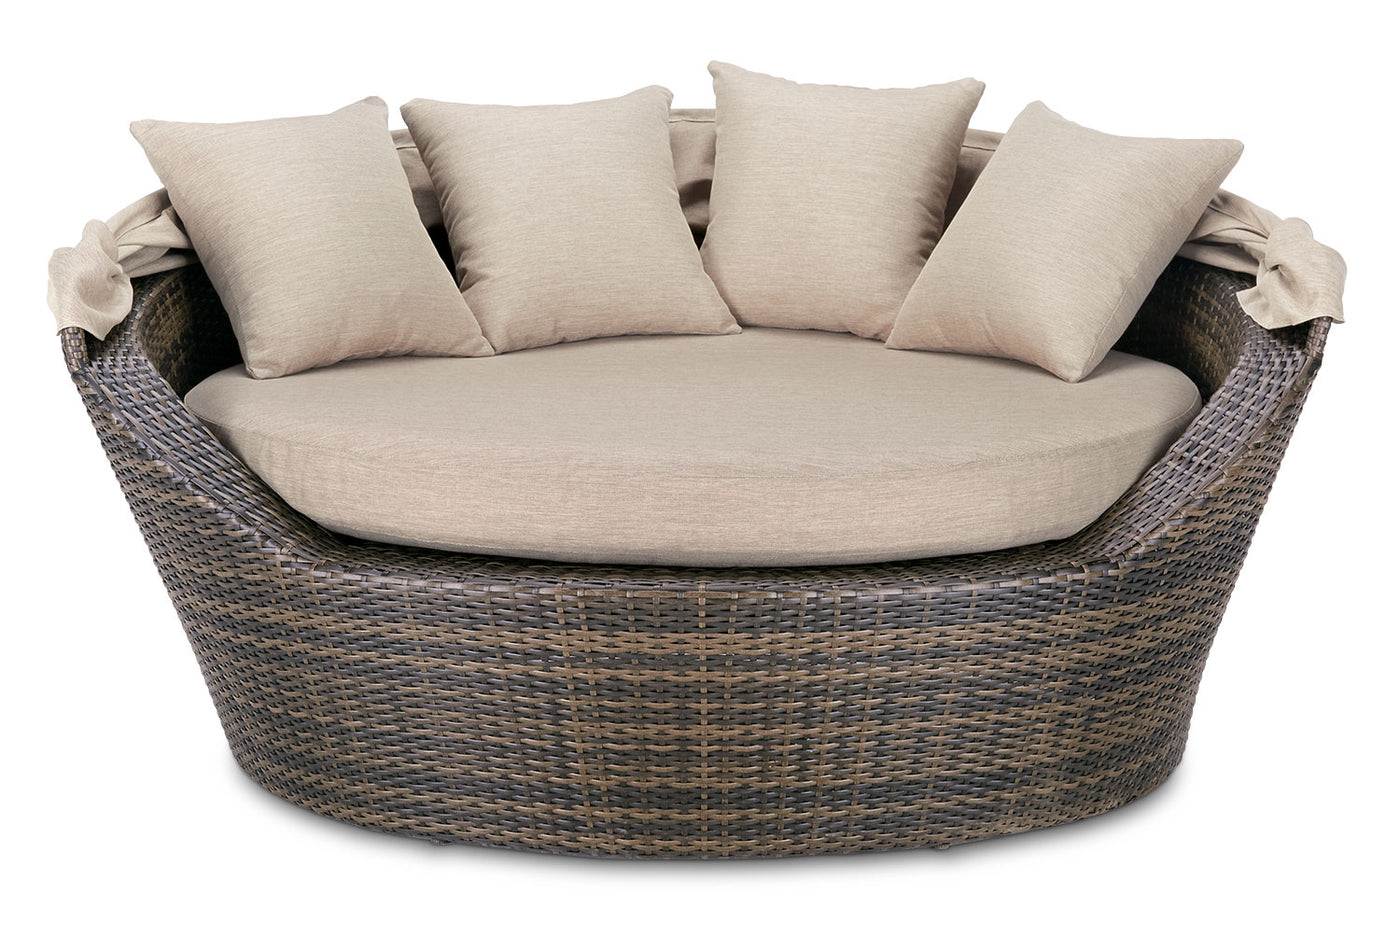 Jonathan patio daybed beige touch to zoom 1 2